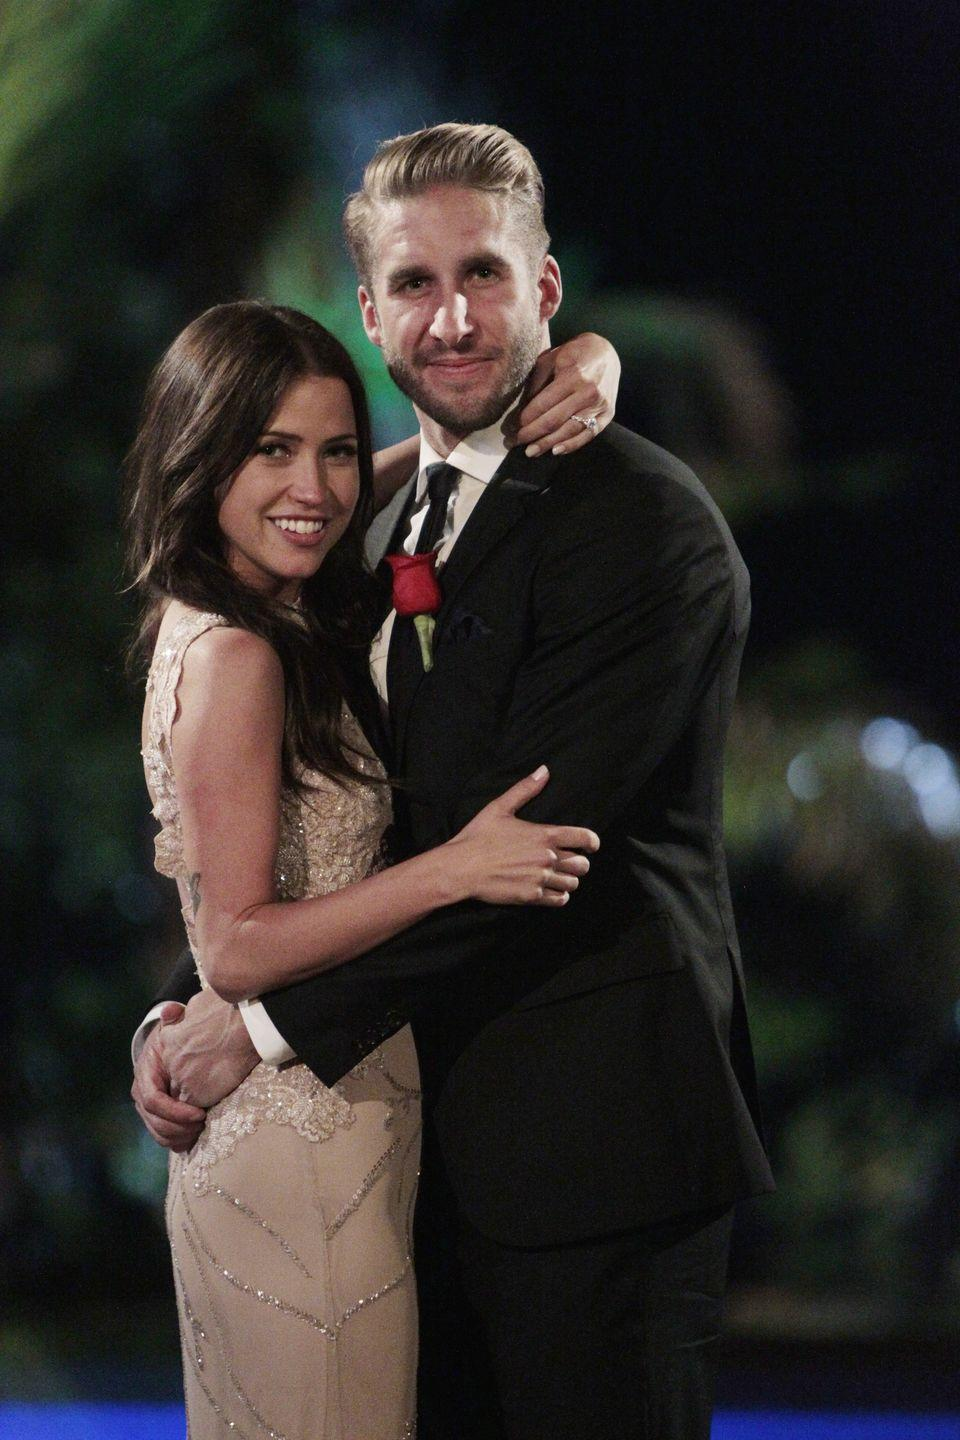 """<p>Kaitlyn Bristowe spoiled her season when she <a href=""""https://www.businessinsider.com/kaitlyn-bristowe-blows-abcs-bachelorette-finale-in-a-snapchat-2015-7"""" rel=""""nofollow noopener"""" target=""""_blank"""" data-ylk=""""slk:posted a Snapchat photo of her and winner Shawn Booth"""" class=""""link rapid-noclick-resp"""">posted a Snapchat photo of her and winner Shawn Booth</a> before the finale. Of course it circulated, but it doesn't seem she had to pay the <a href=""""https://medium.com/@CounttheClock/how-does-the-bachelor-keep-its-secrets-b7ddea130d9b"""" rel=""""nofollow noopener"""" target=""""_blank"""" data-ylk=""""slk:rumored $5 million fine"""" class=""""link rapid-noclick-resp"""">rumored $5 million fine</a>. (As if the edit didn't make it obvious she was going to pick him anyway.)</p>"""